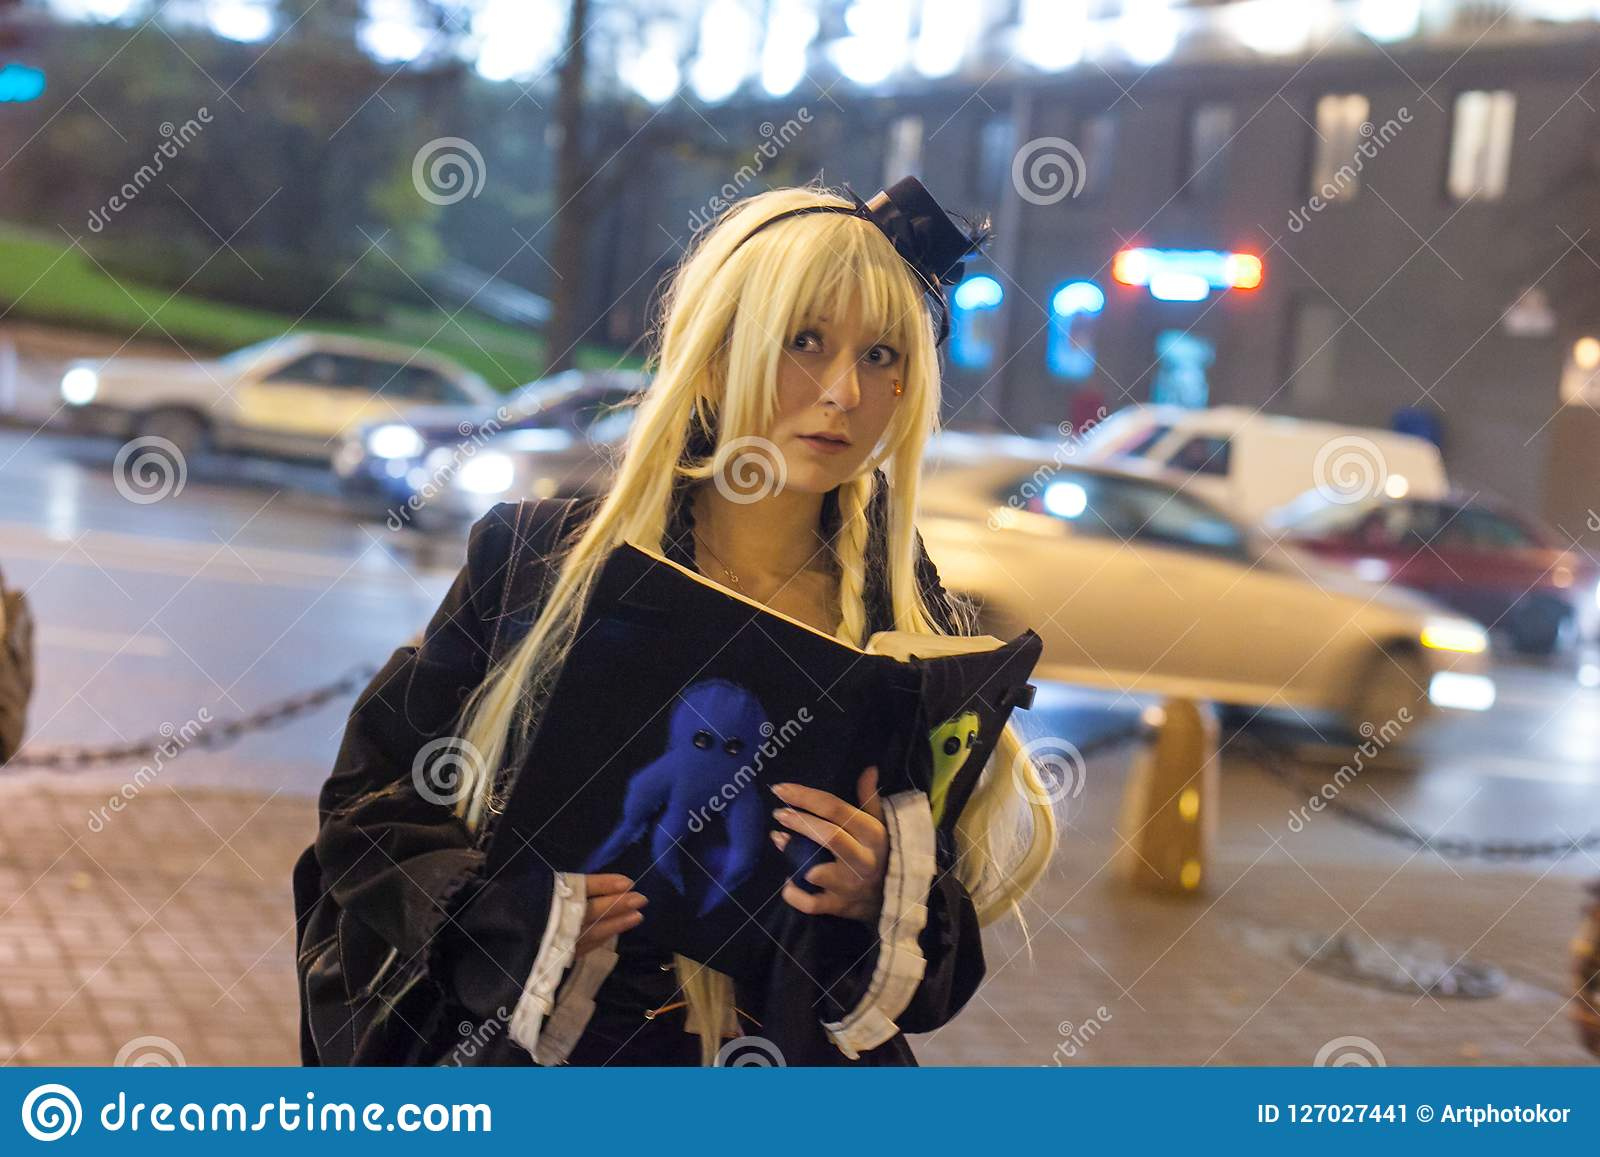 Young lady dressed in black costume, having book in hands